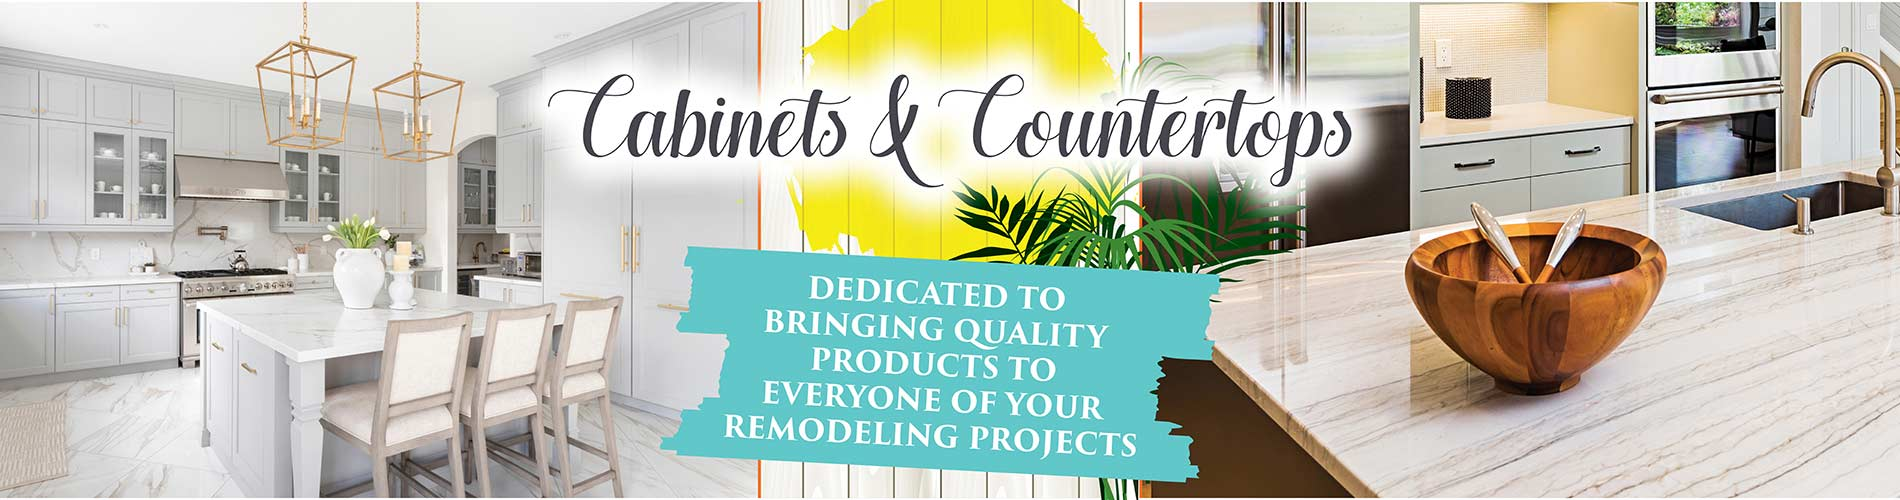 Featuring Cabinets and Countertops for your Remodeling Project at at Flooring USA in Stuart!